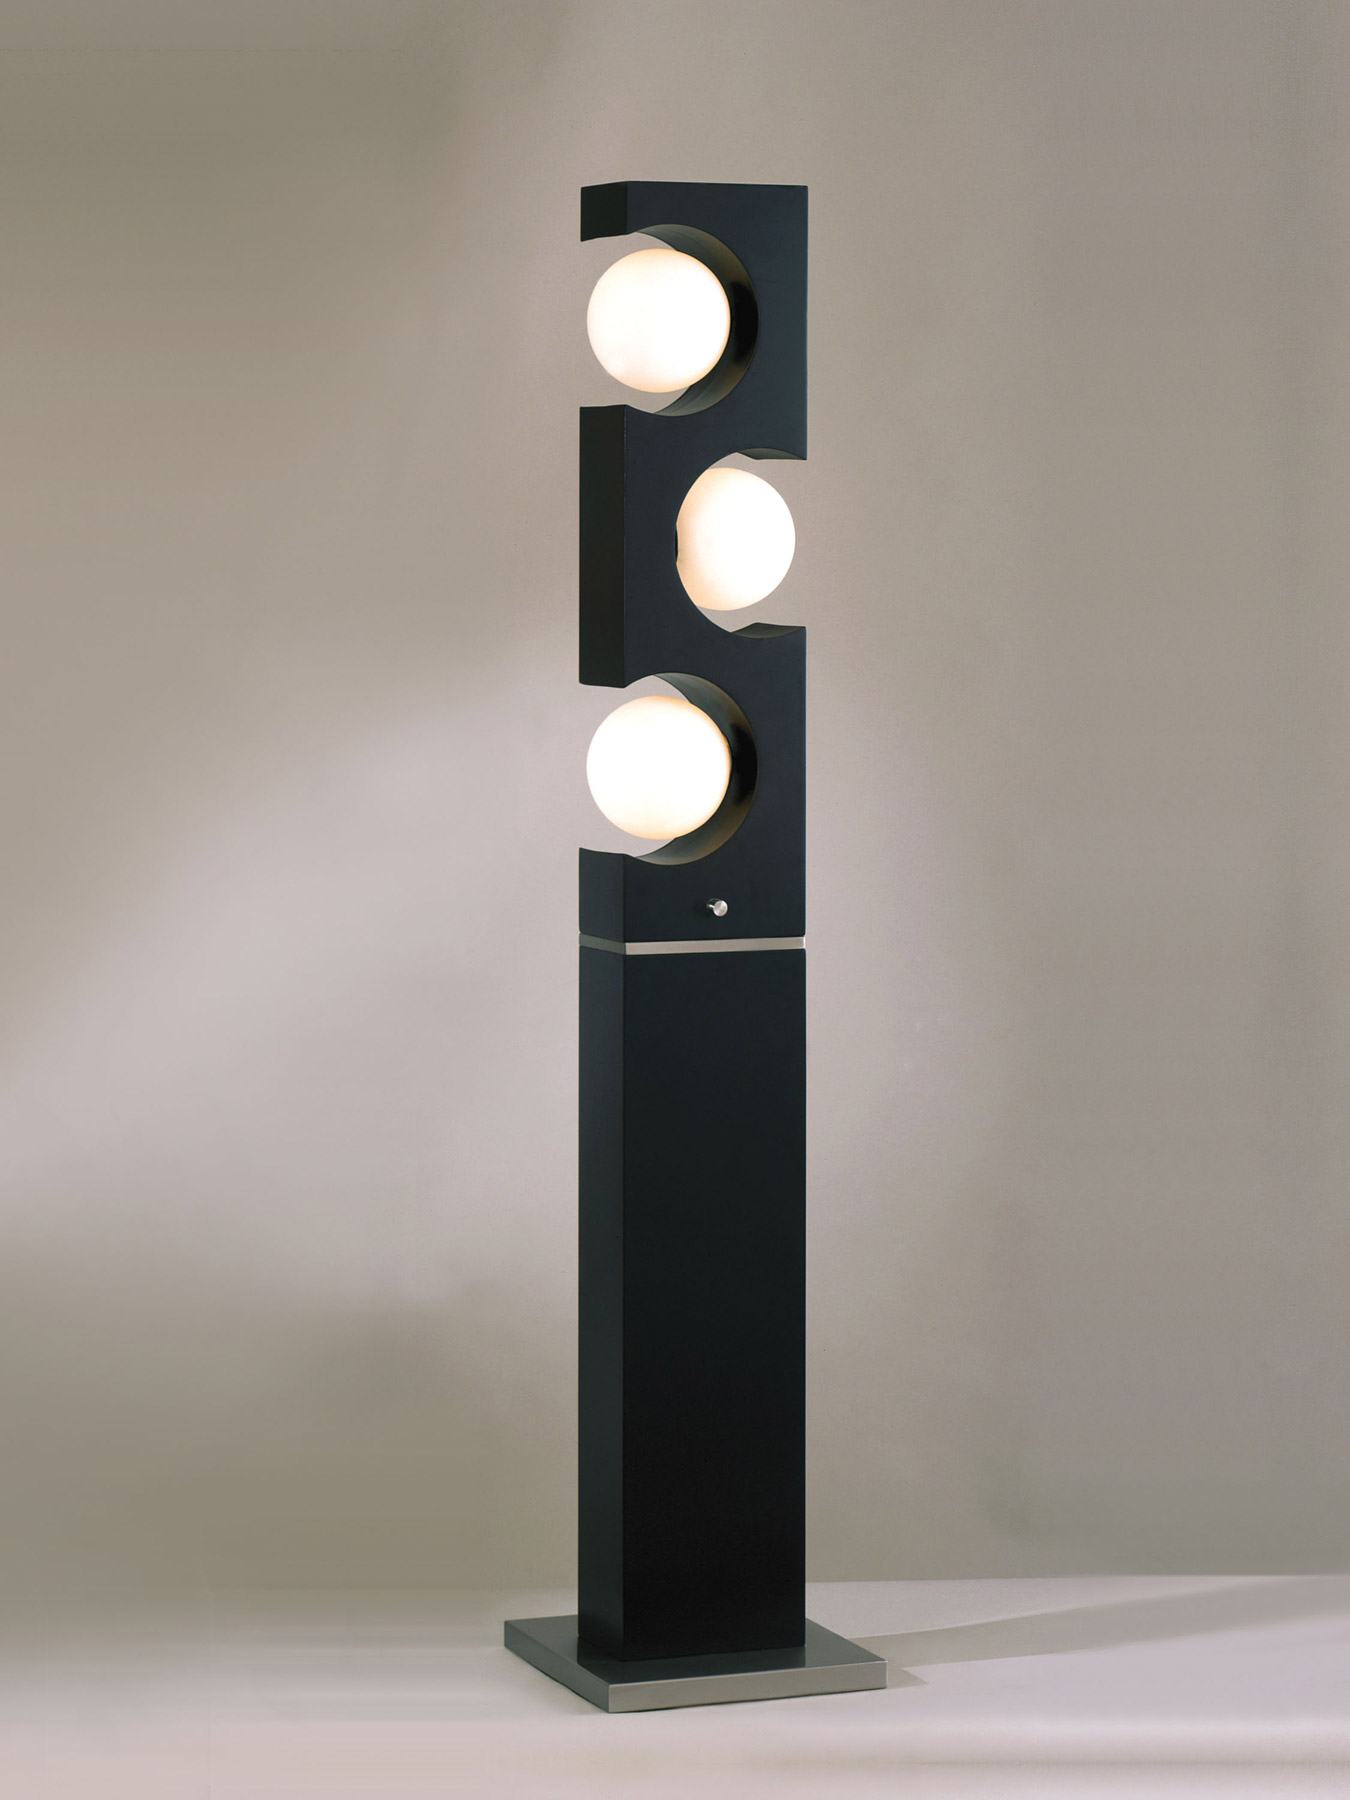 Nova Lighting 2343 Nova 1960 Floor Lamp